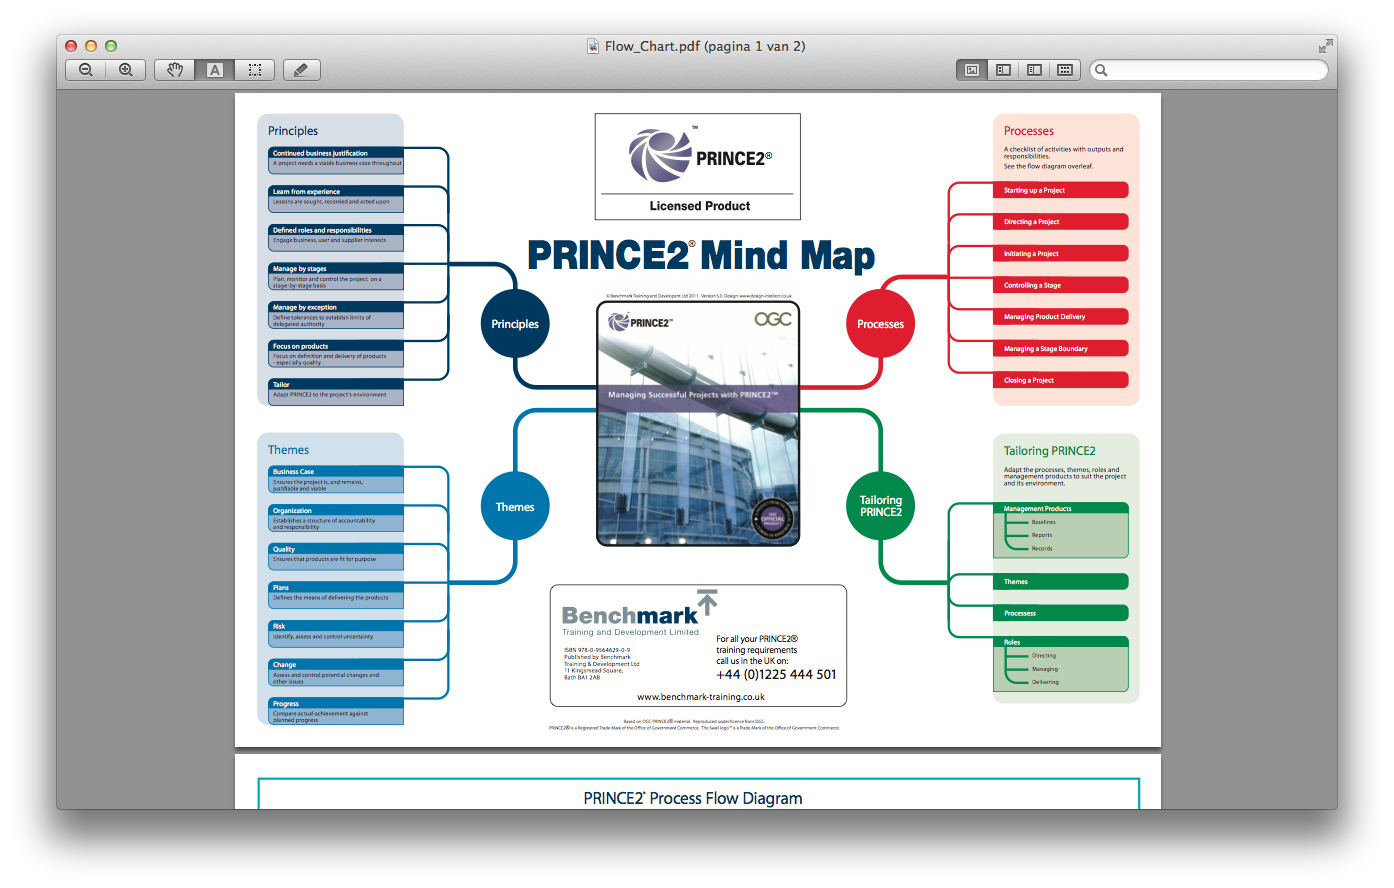 The PRINCE2 Mind Map from Benchmark.com gives an overview of Principles,  Themes, Processes and Tailoring. No details, so the added value is low.